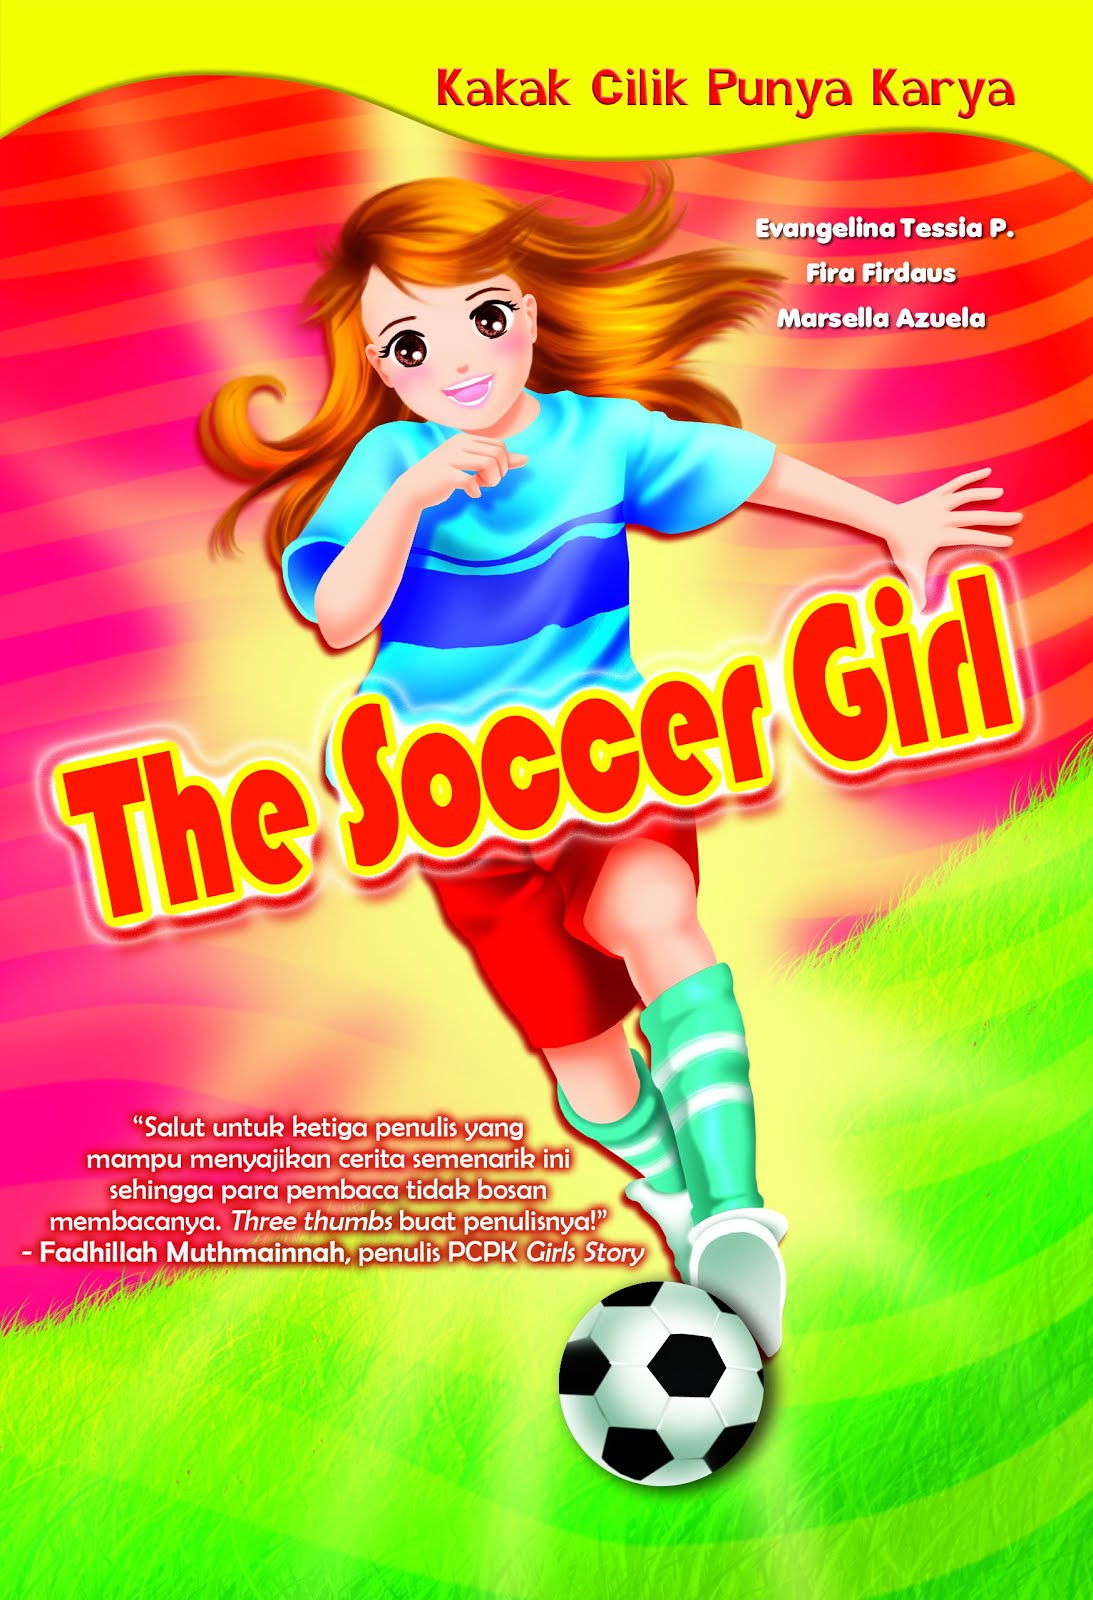 The Soccer Girl, 2012